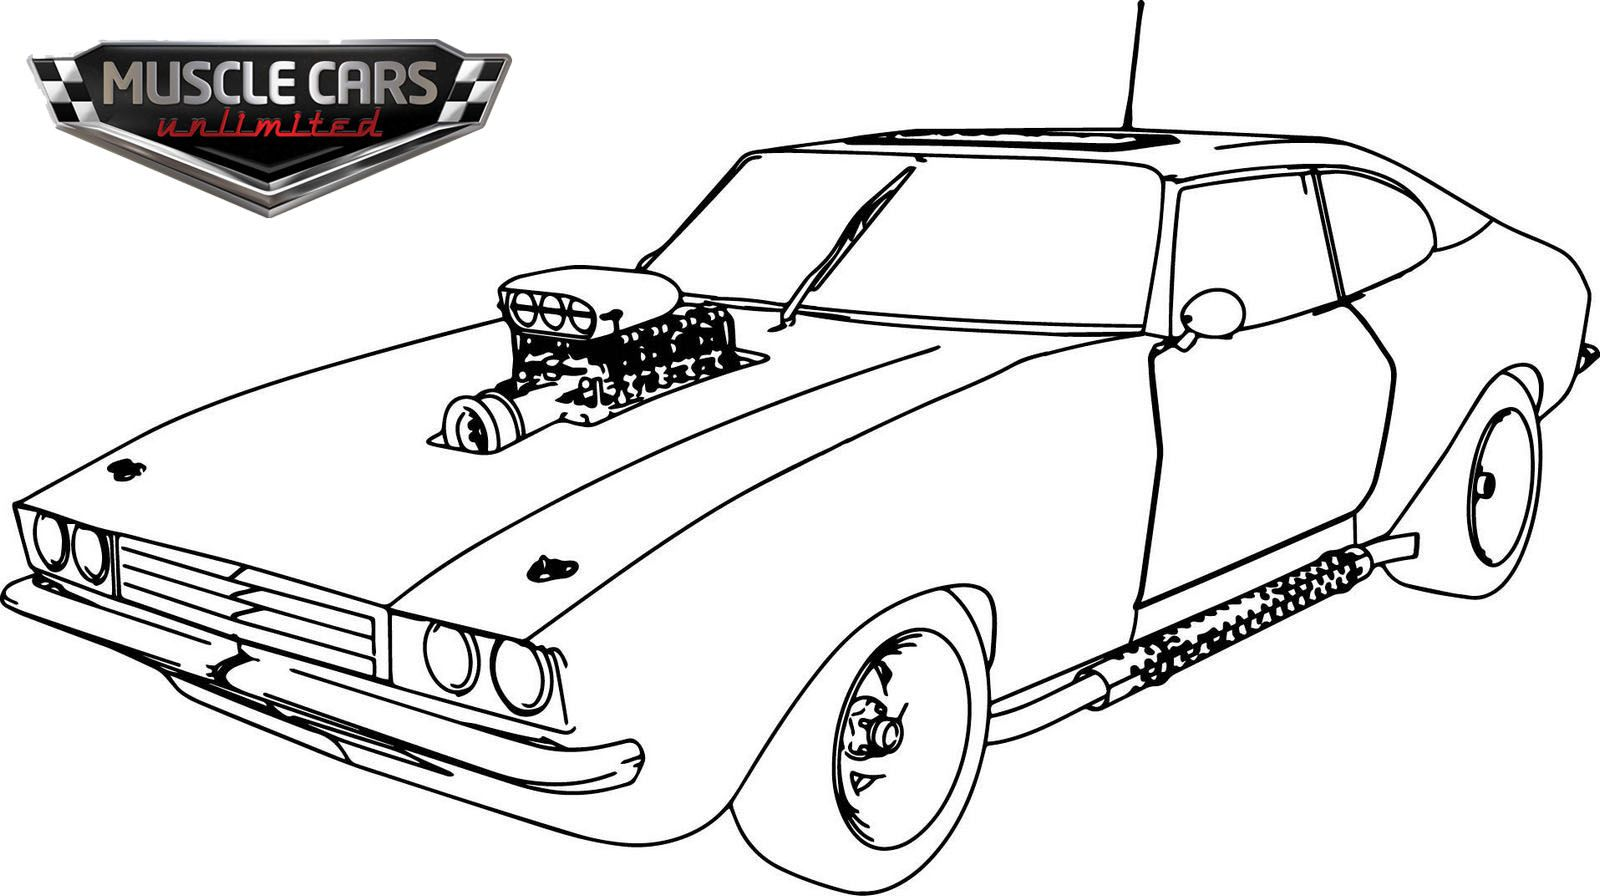 5 Perfect Muscle Car Coloring Pages For All Ages Race Car Coloring Pages Cars Coloring Pages Coloring Pages For Kids